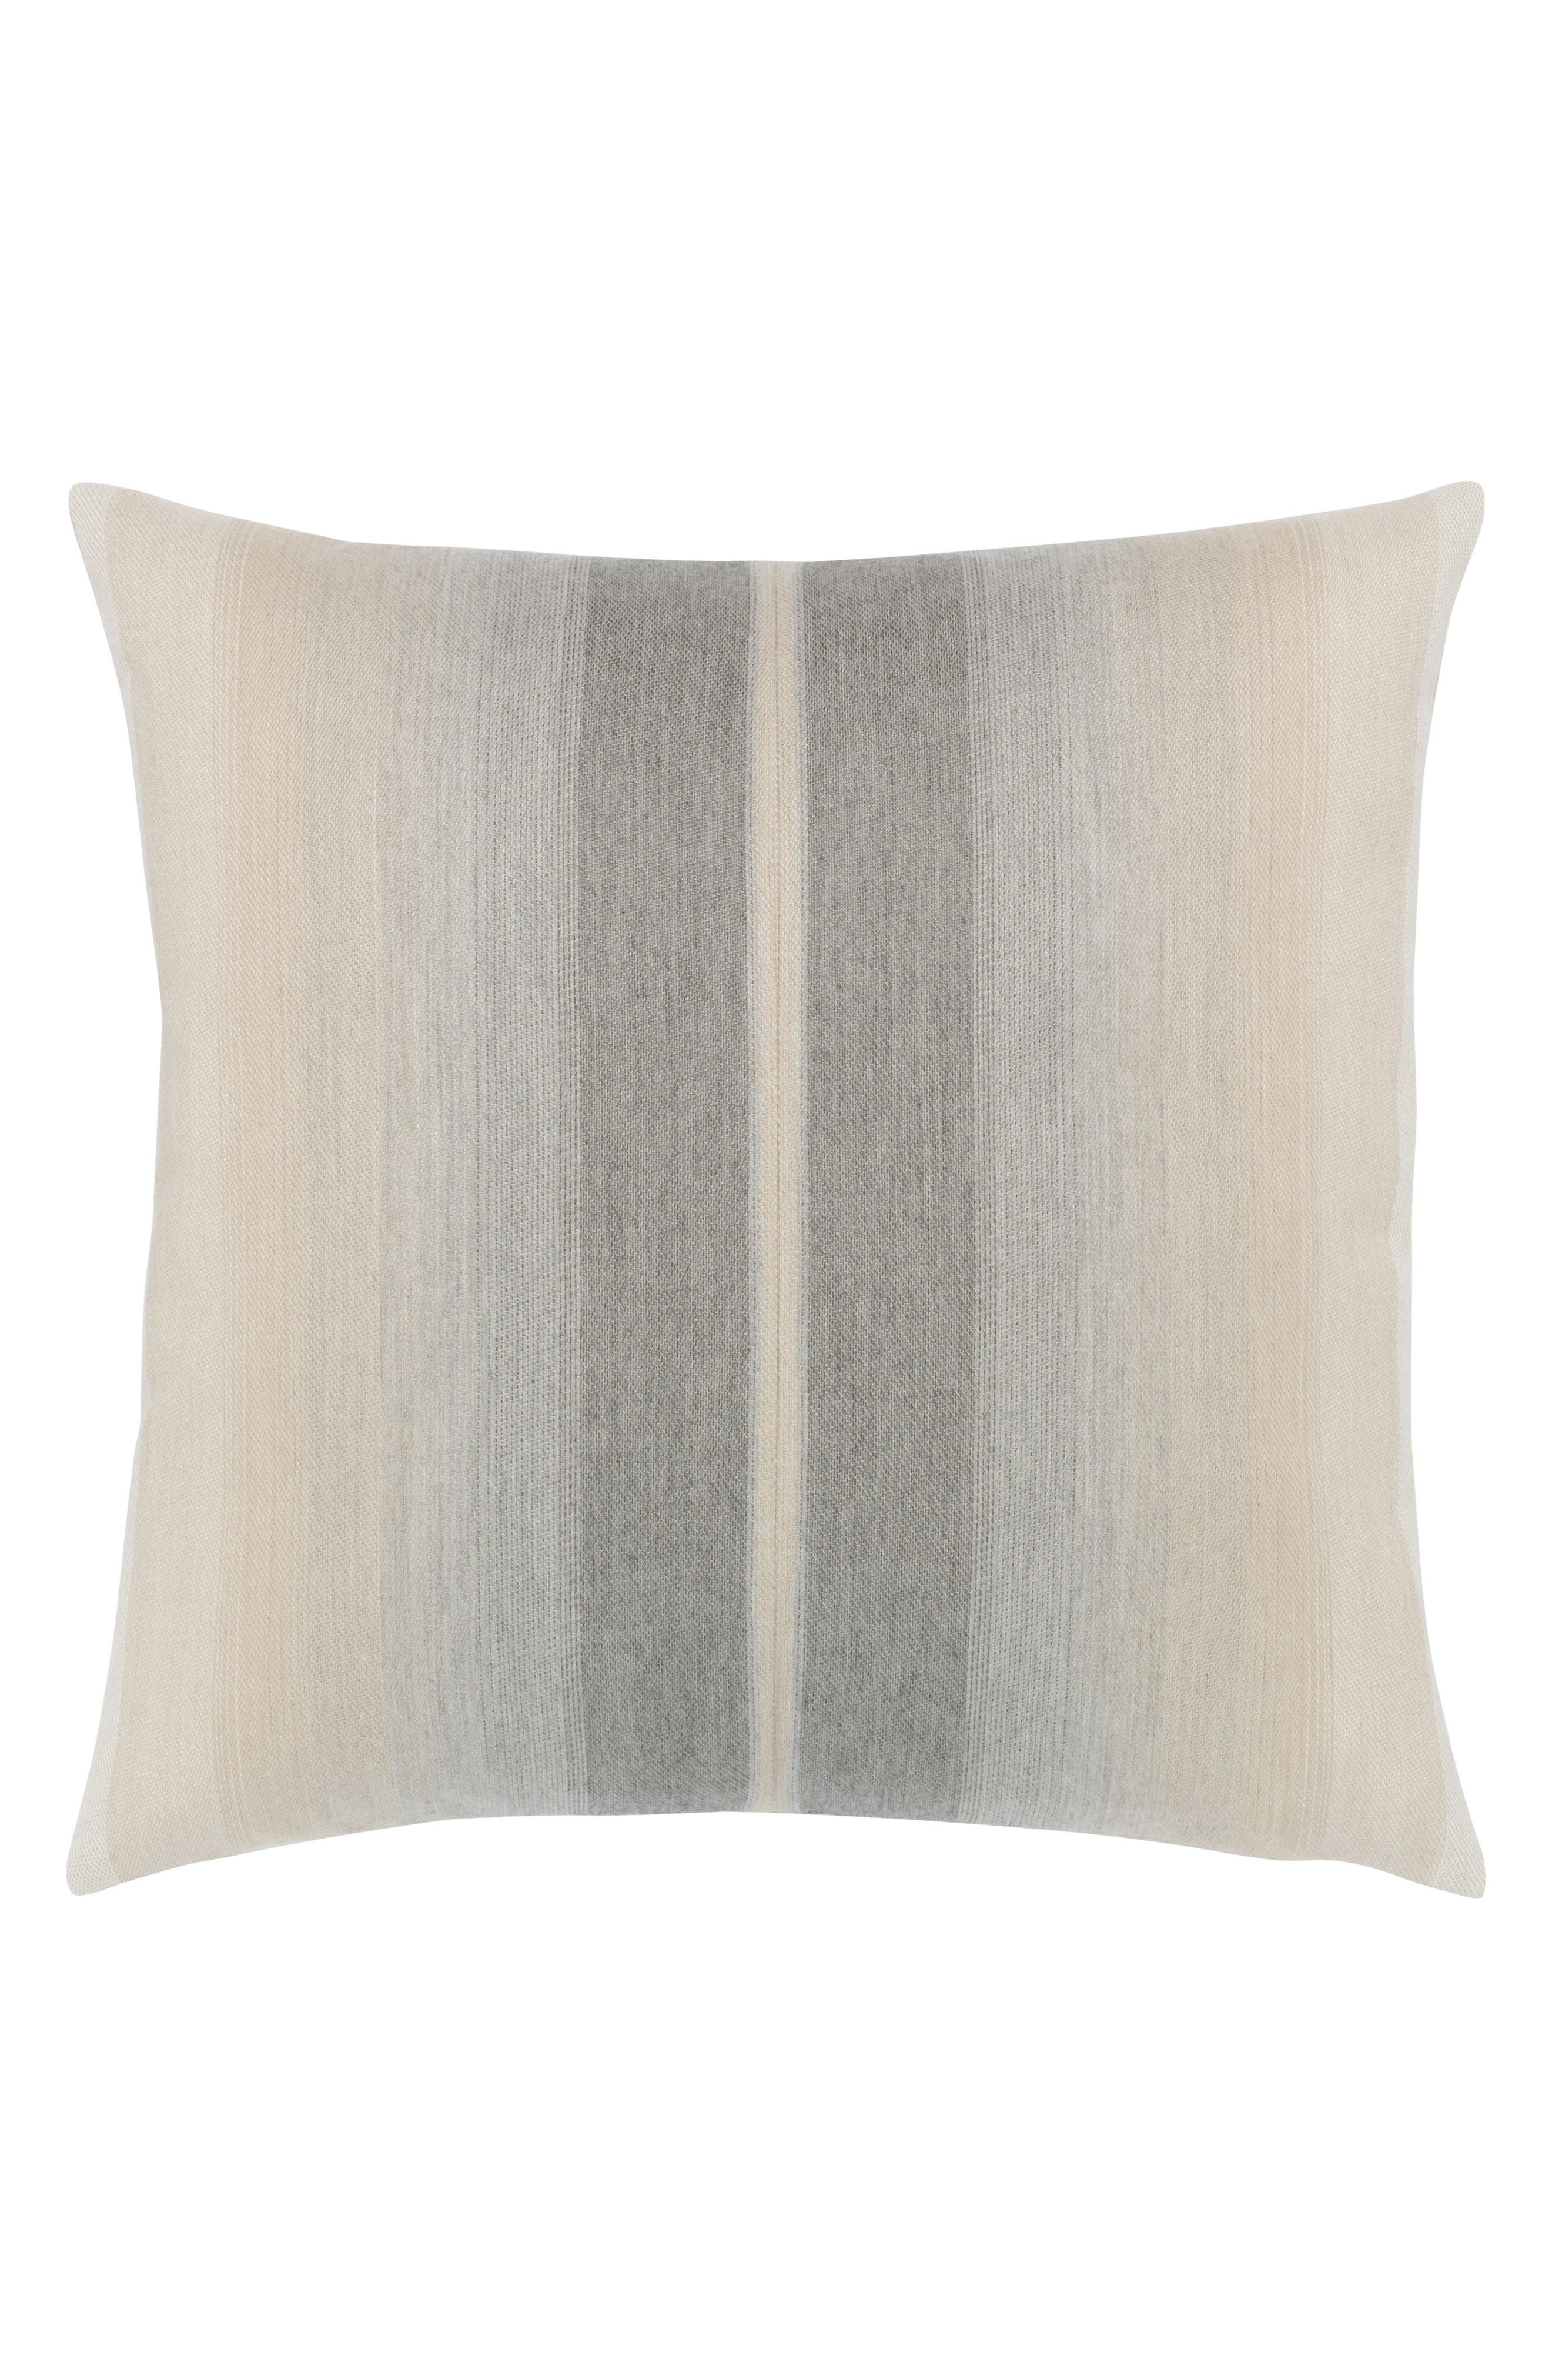 ELAINE SMITH Ombré Grigio Indoor/Outdoor Accent Pillow, Main, color, 020